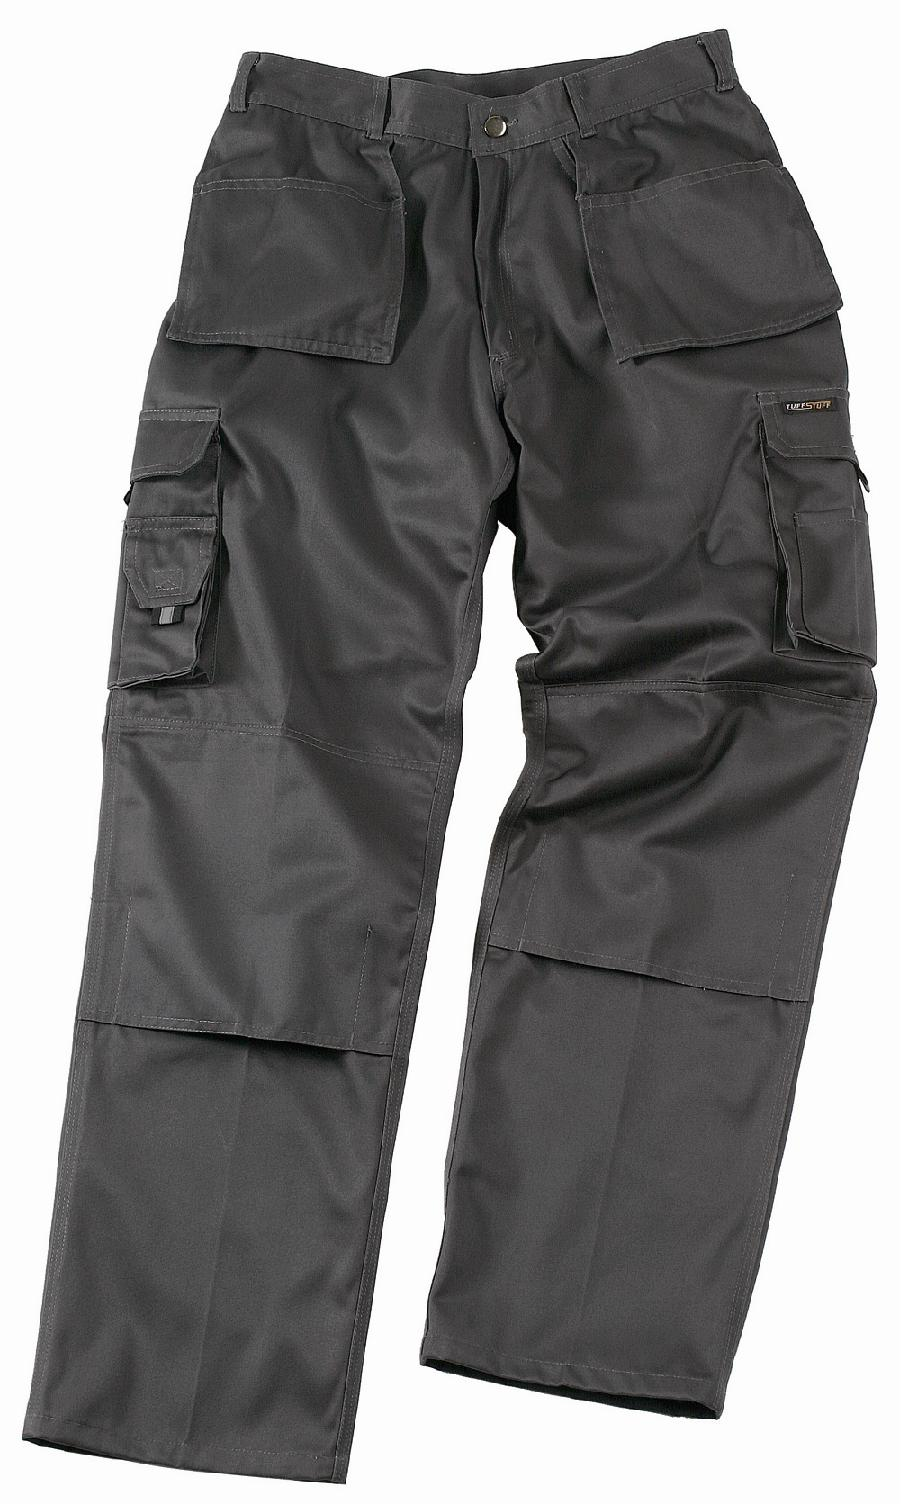 711 Tuff Stuff Pro Work Trousers